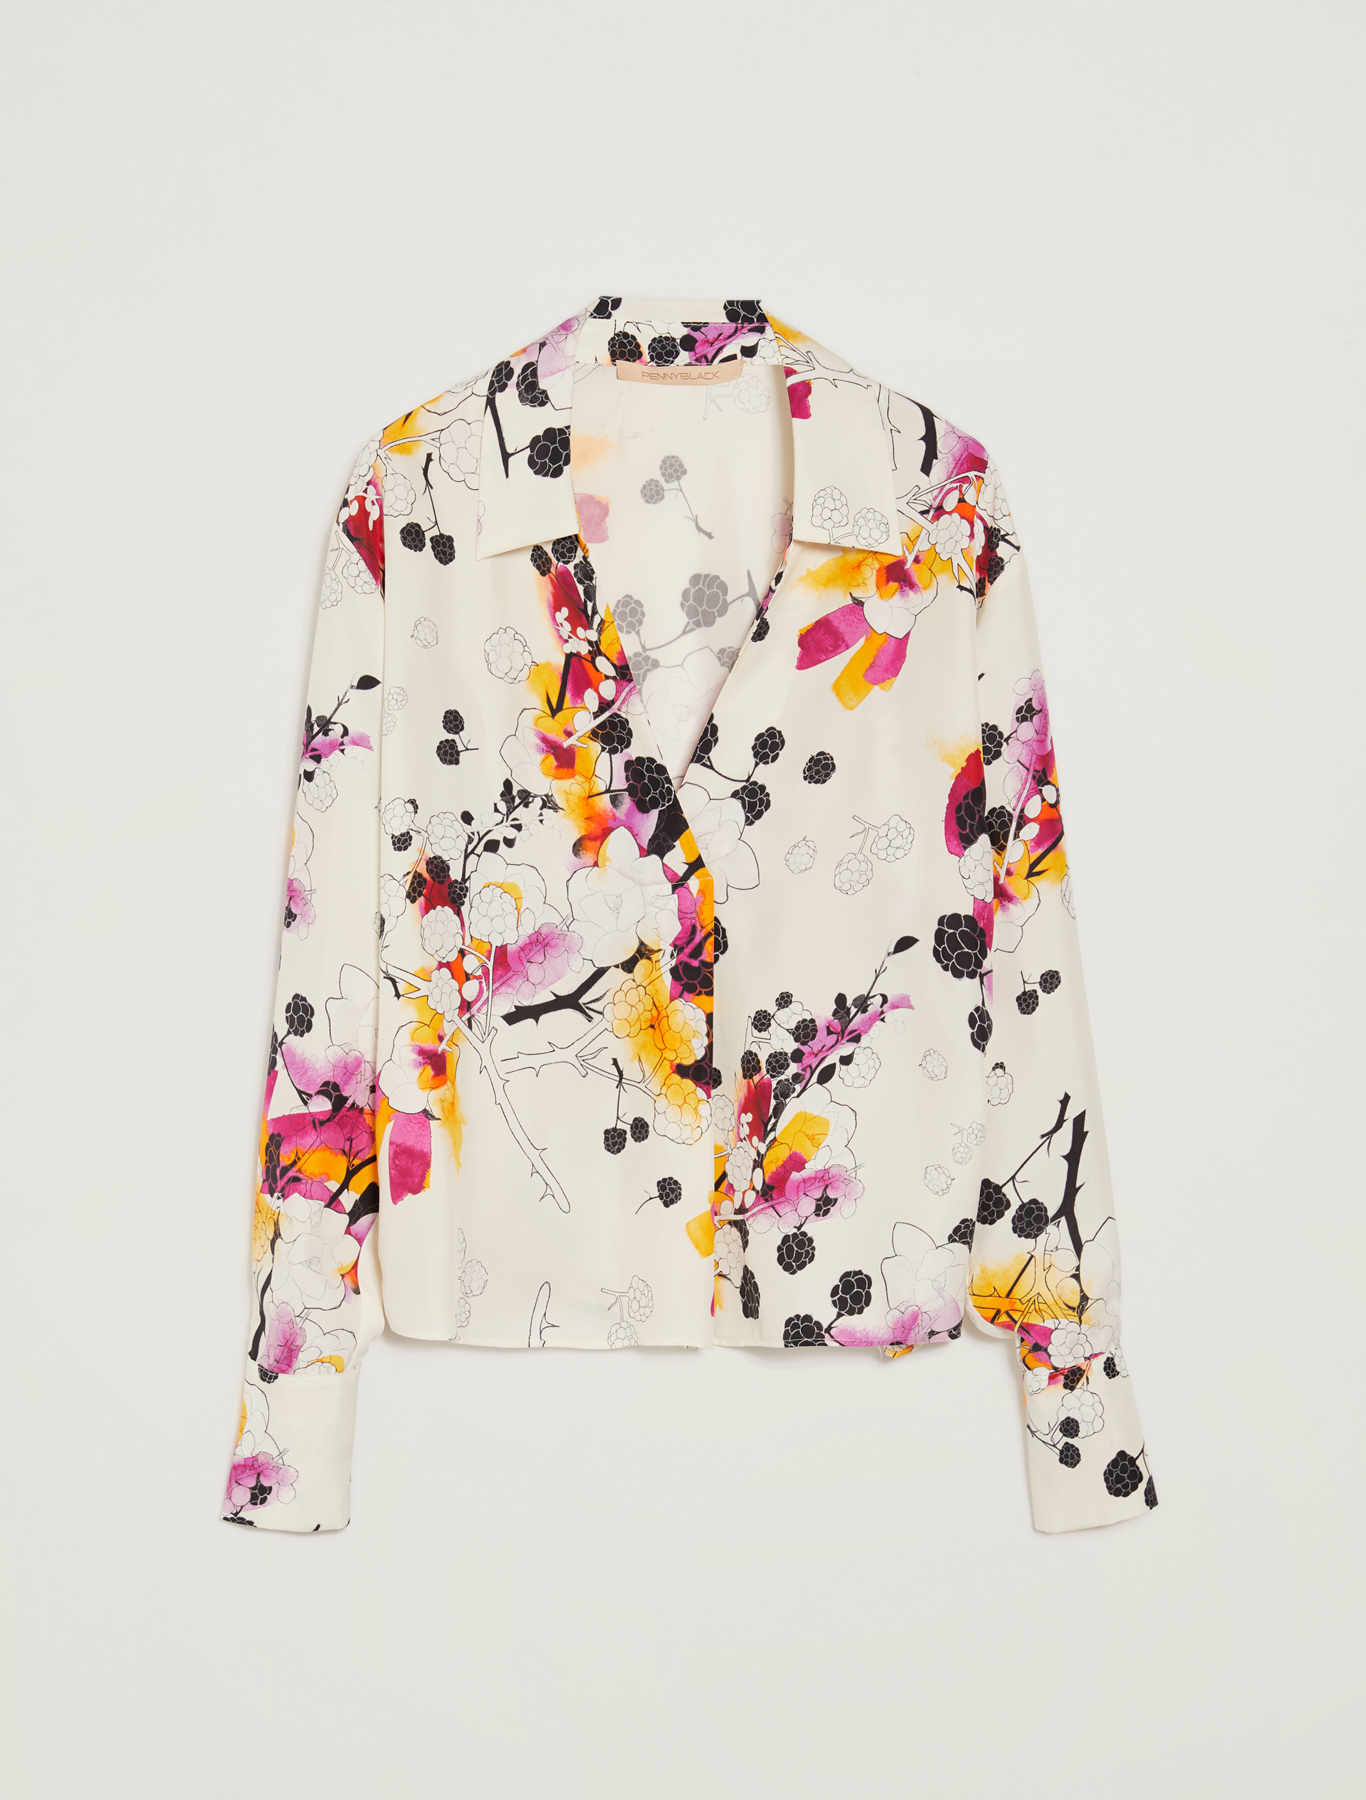 Sunset Road silk shirt - white pattern - pennyblack